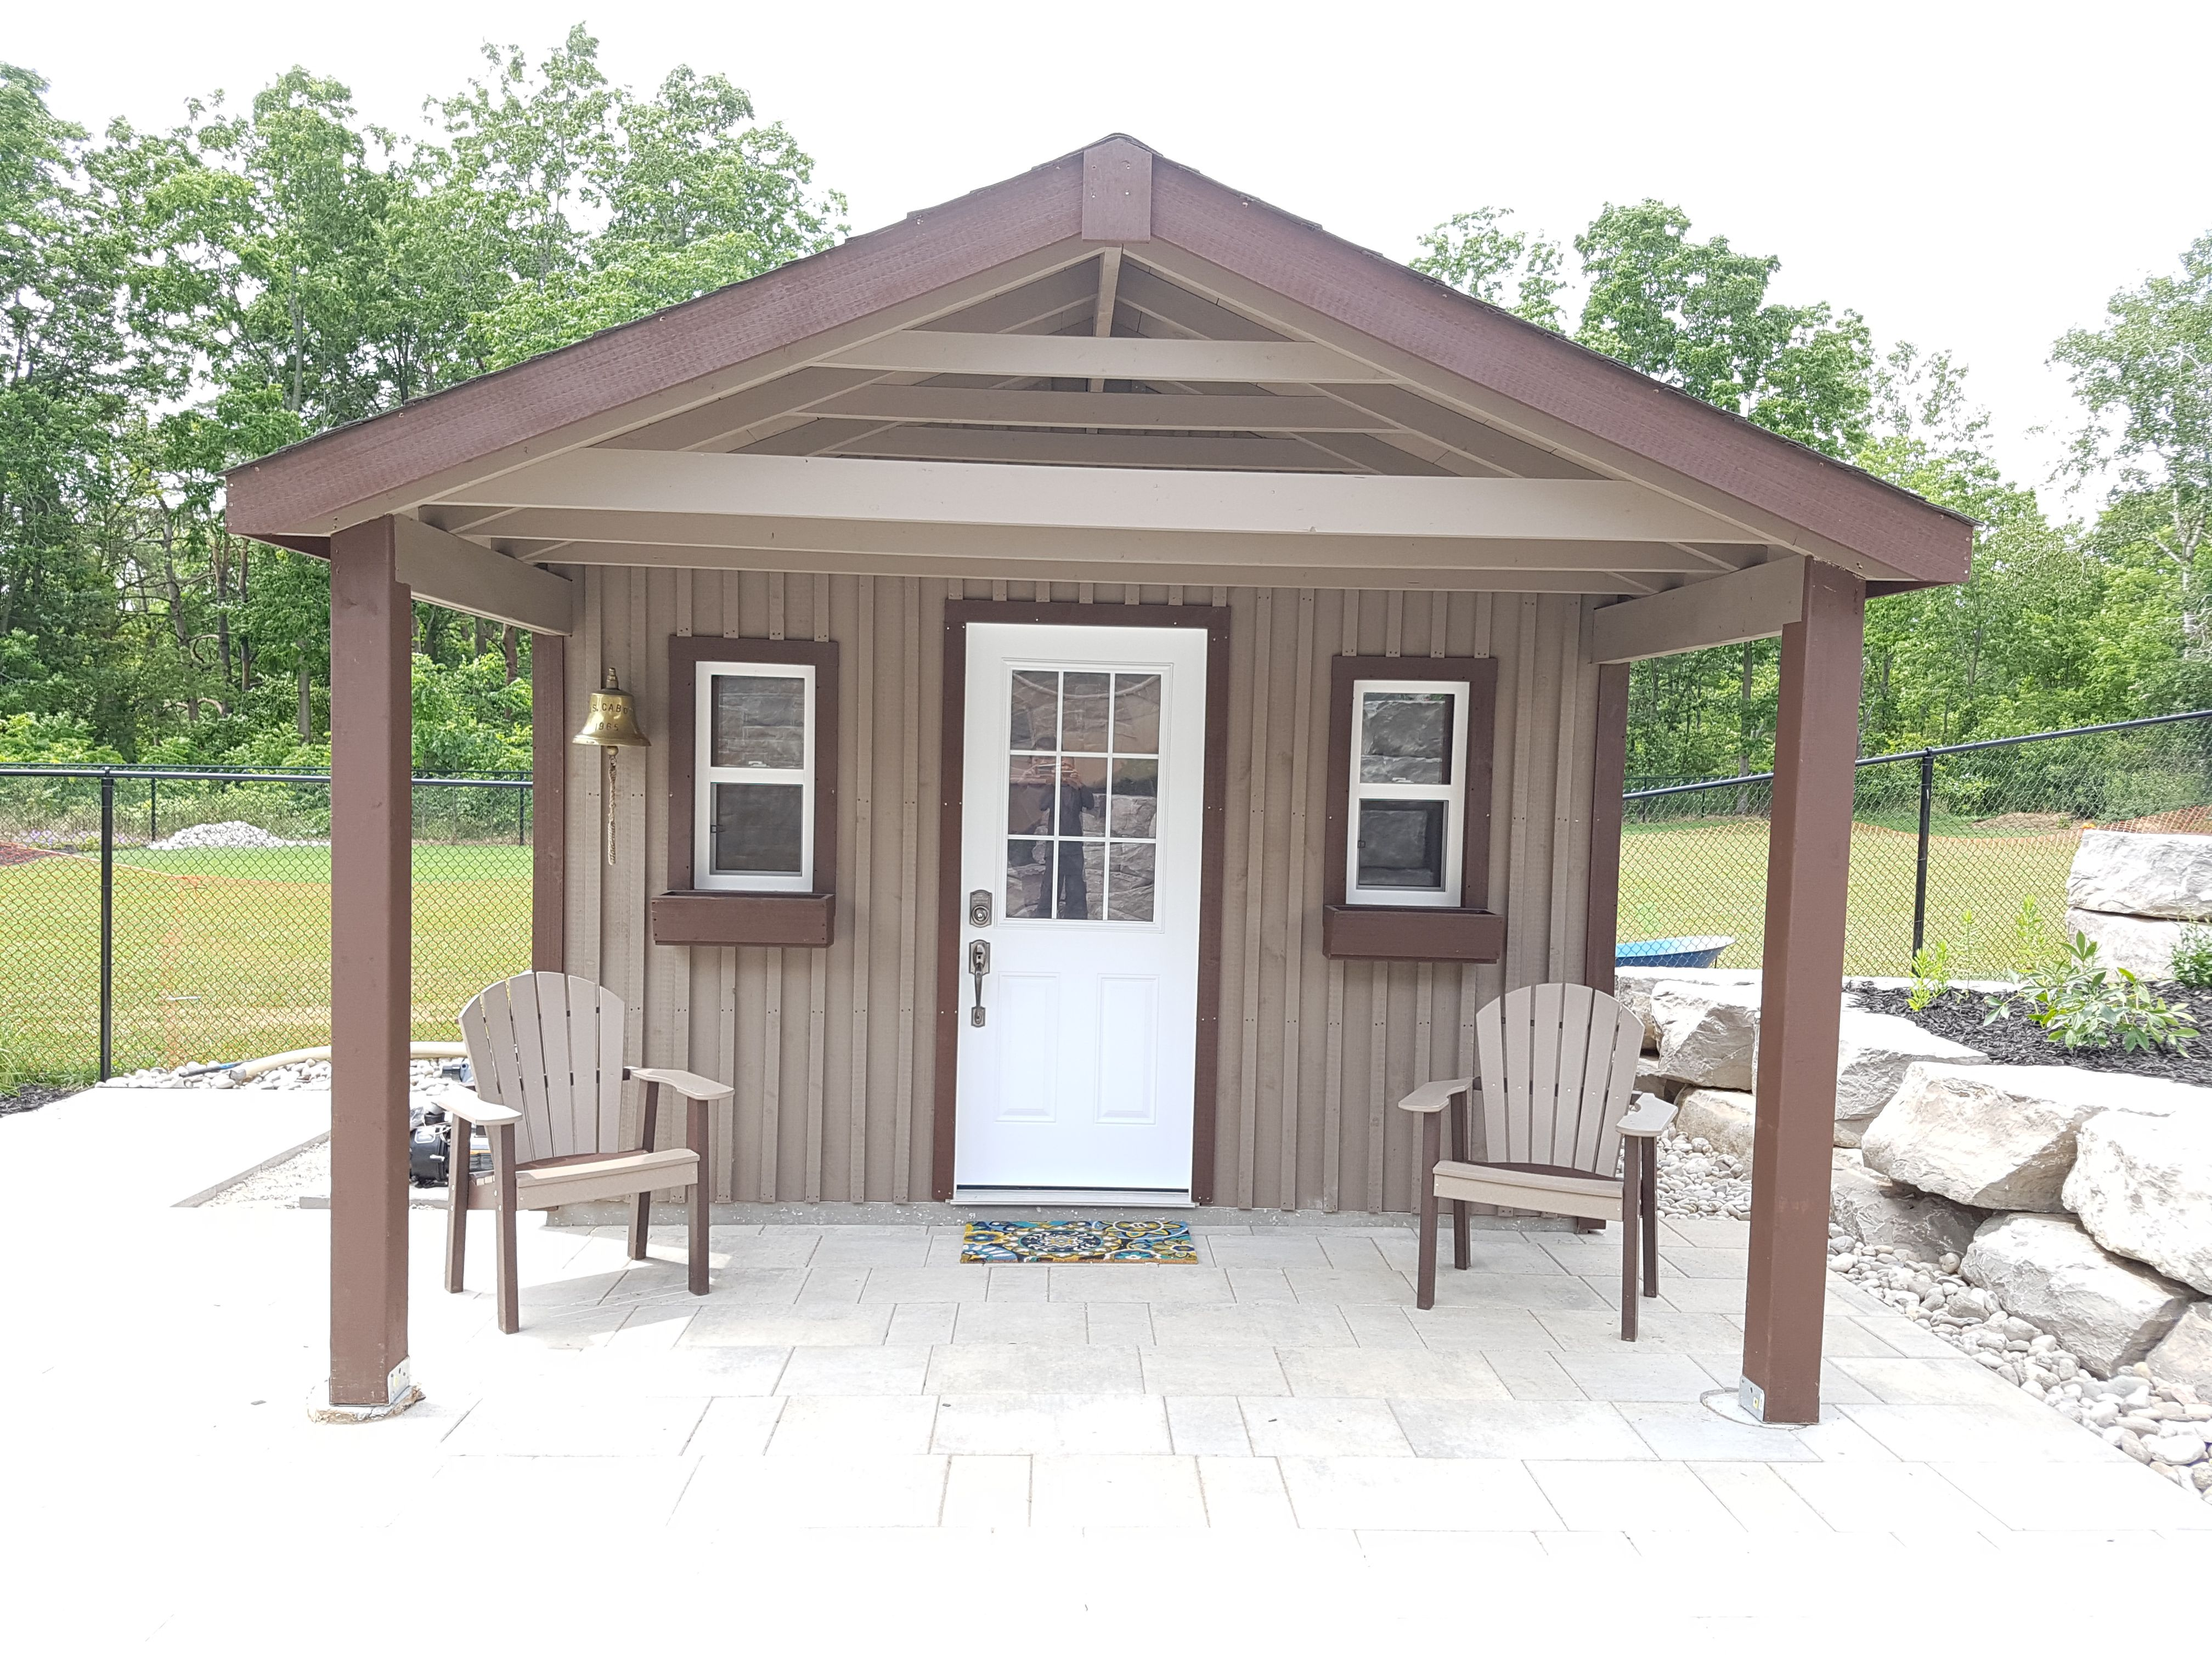 12x12 With A 6 Porch High Board And Batten Backyard Sheds Custom Sheds Shed